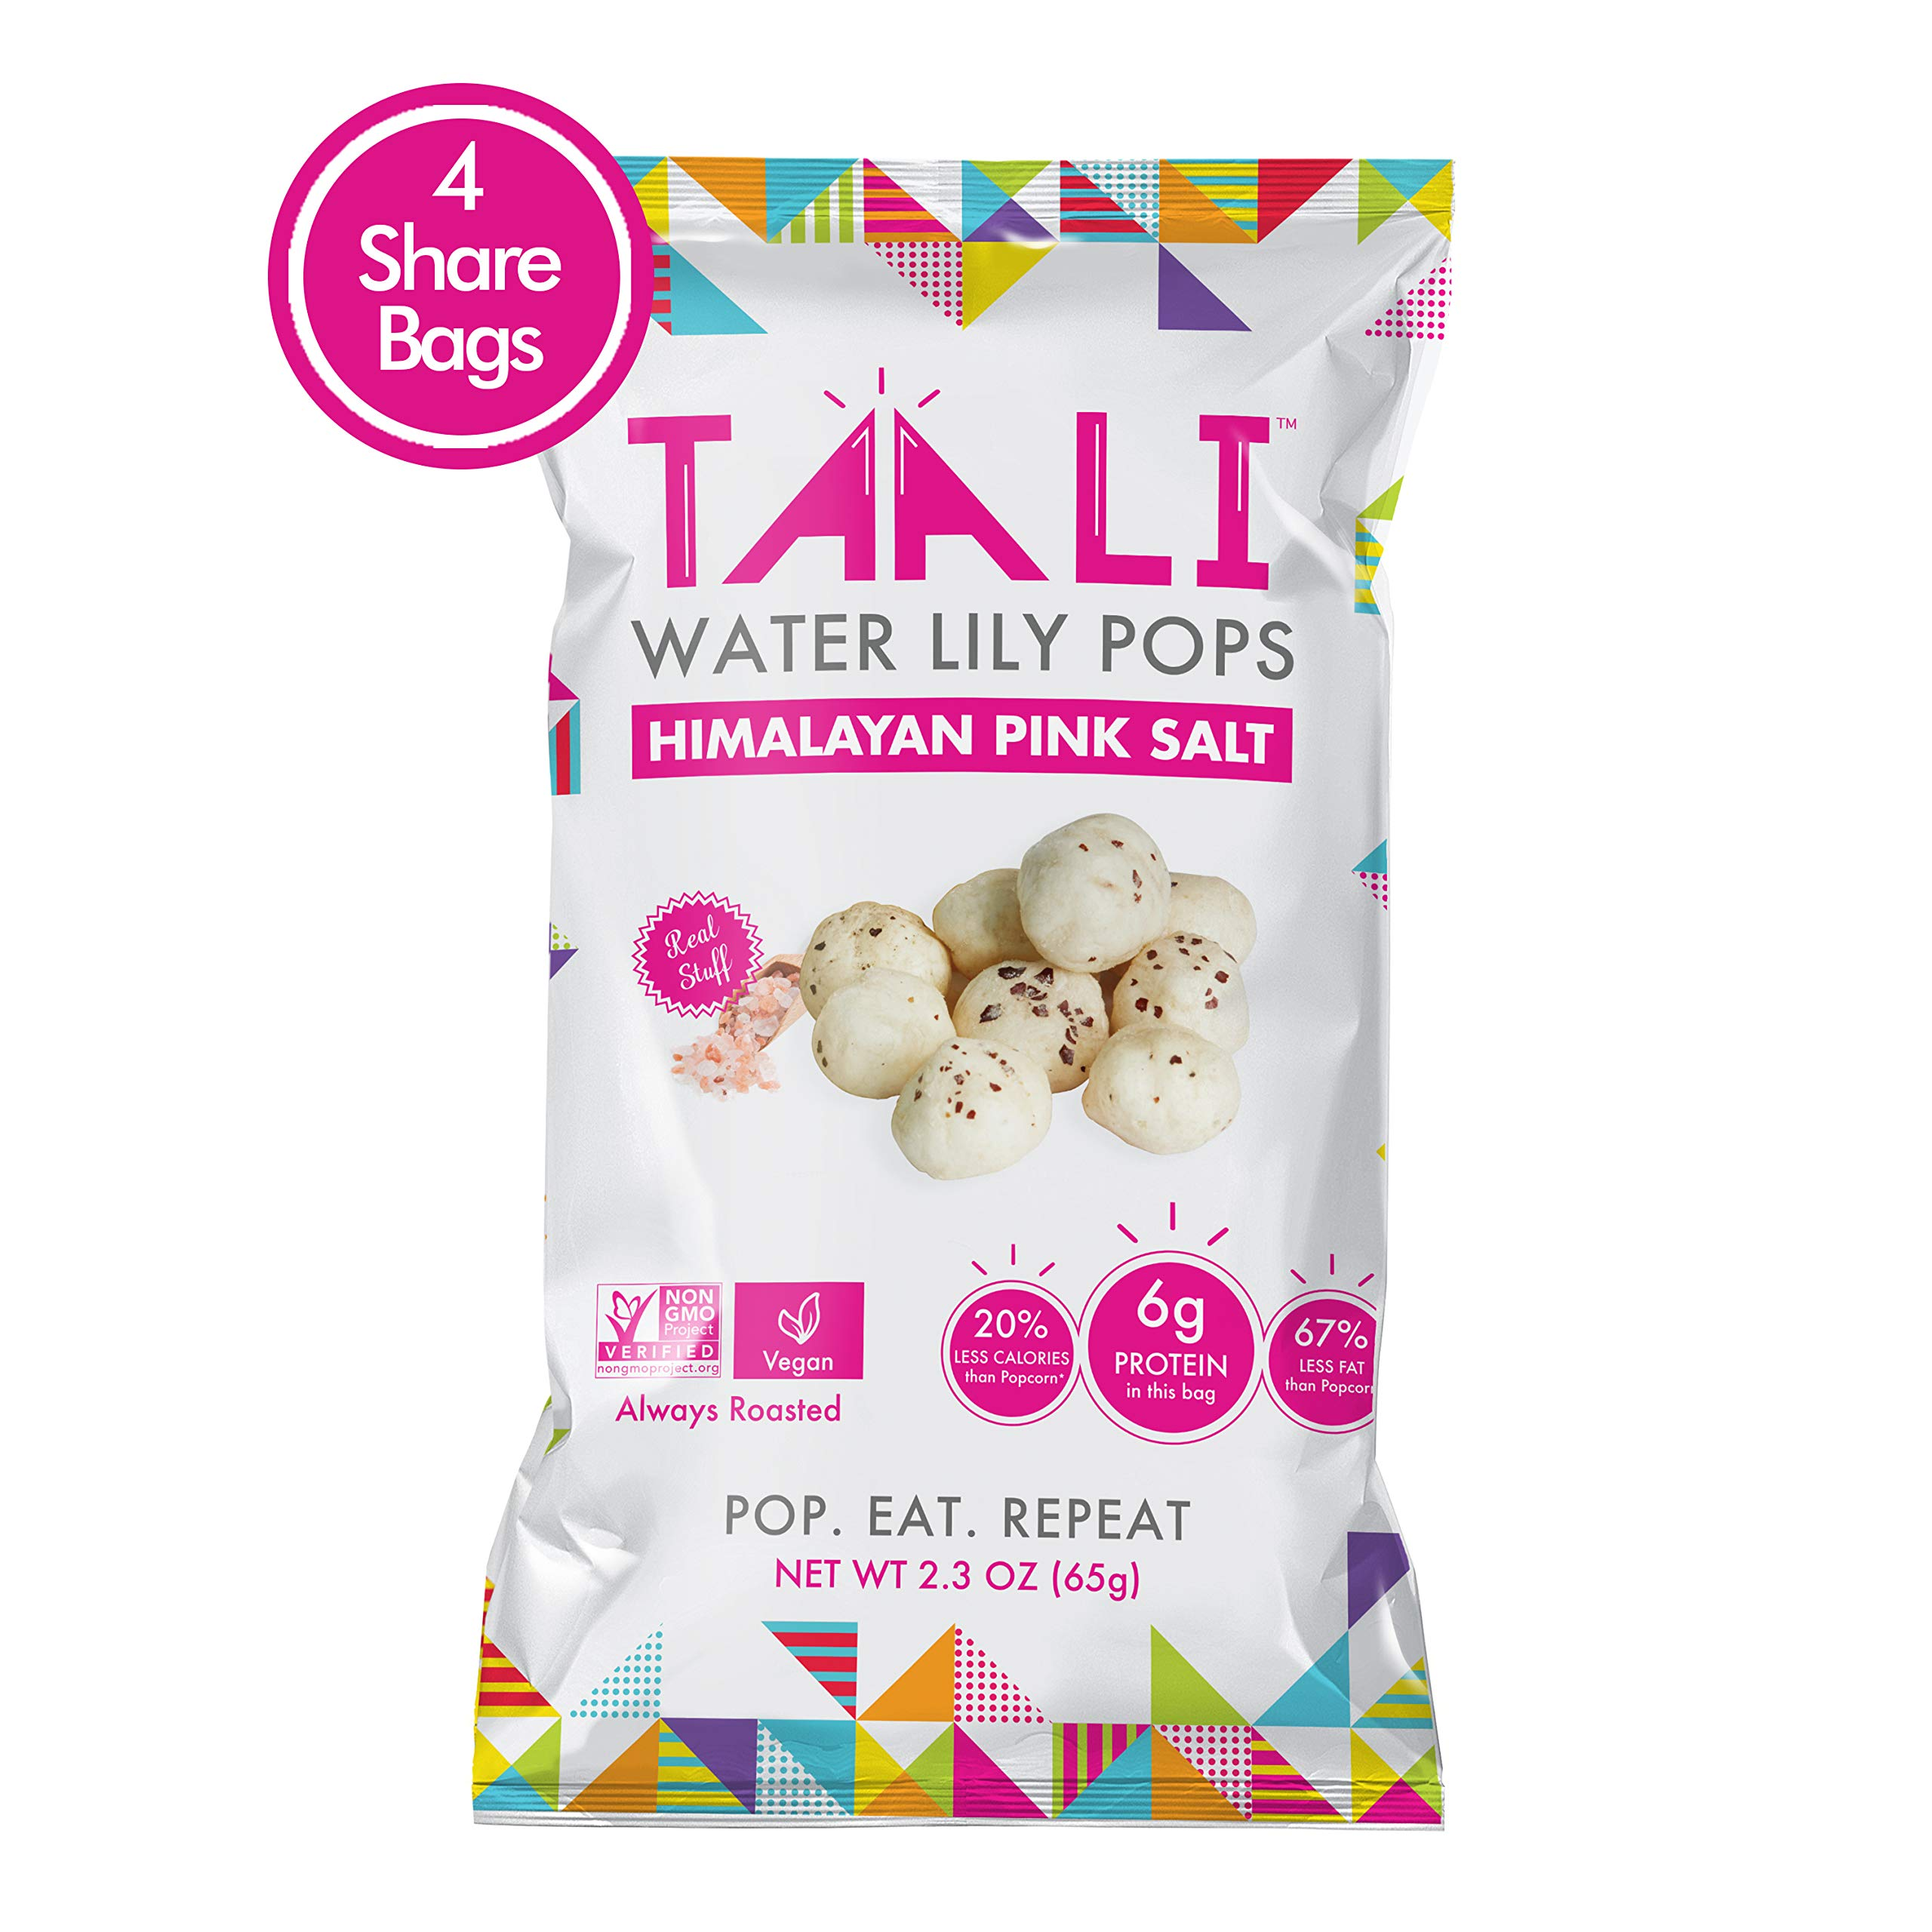 Taali Himalayan Pink Salt Water Lily Pops (4-Pack) - Classic Flavor from the Mountains | Protein-Rich Roasted Snack | Non GMO Verified | 2.3 oz Multi-Serve Bags by Taali (Image #1)